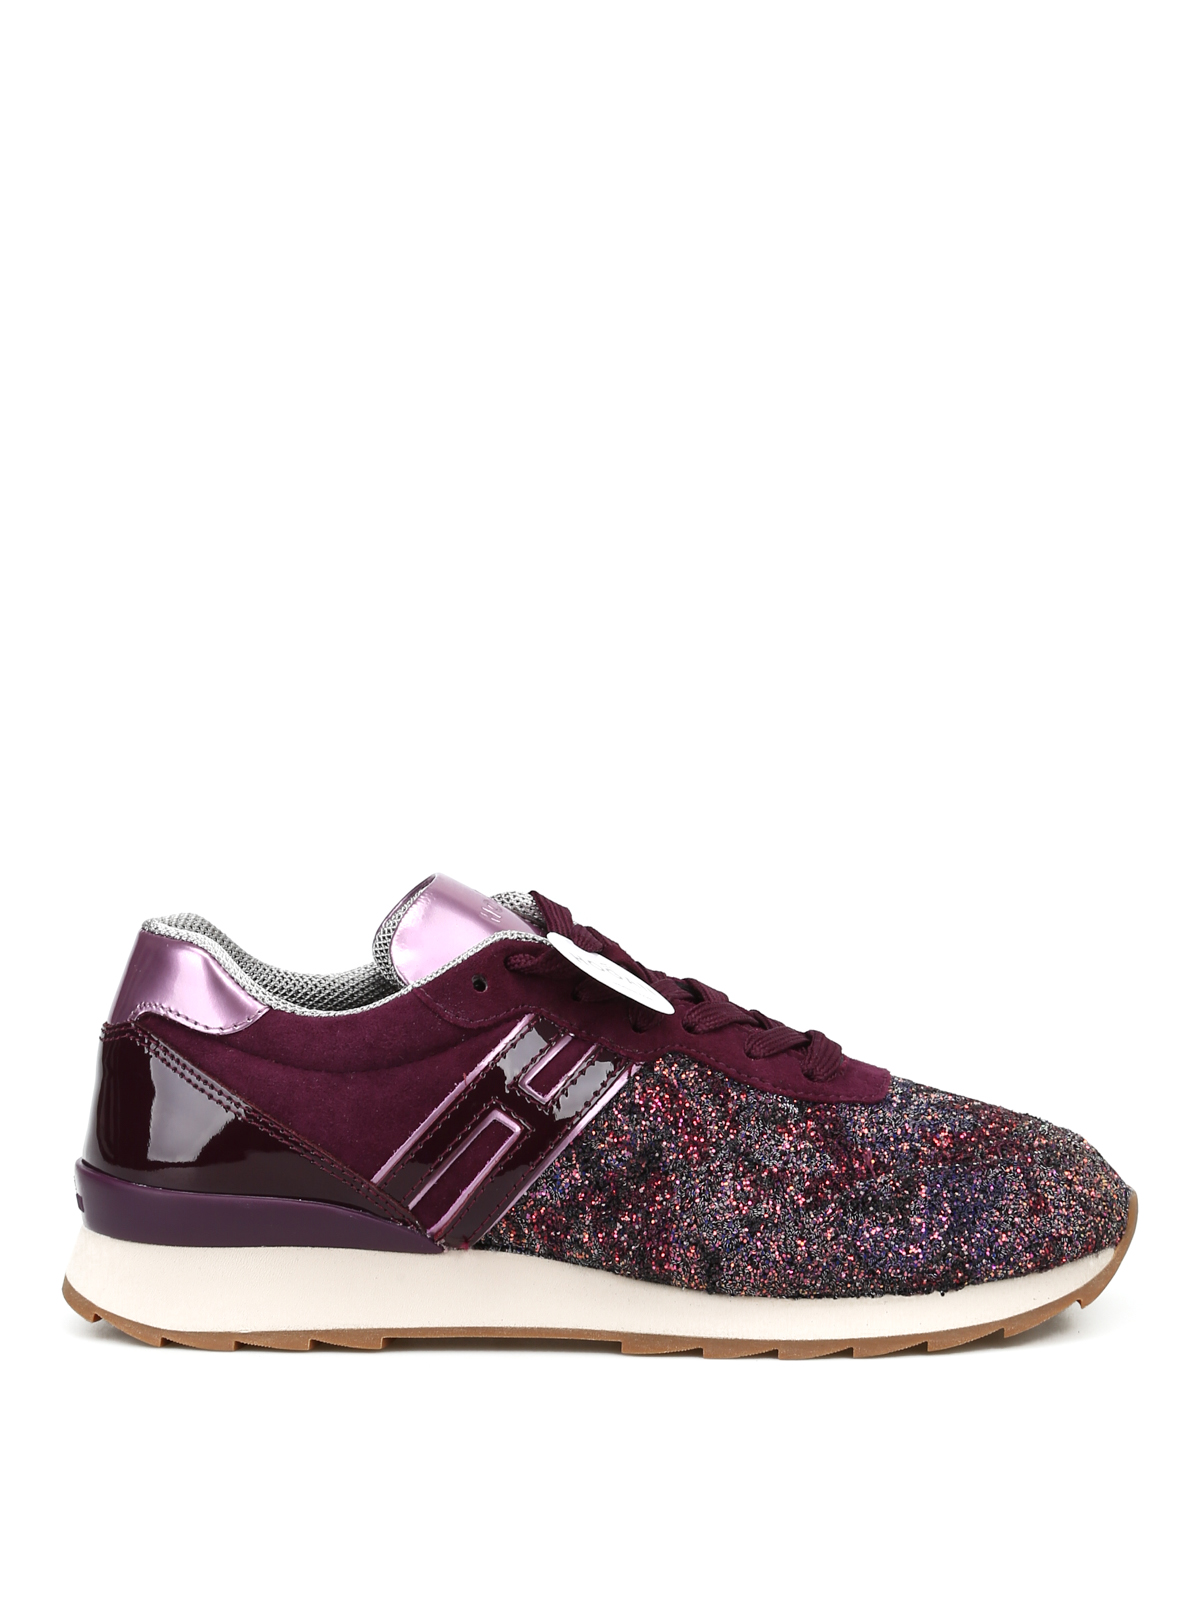 R261 purple suede and glitter sneakers